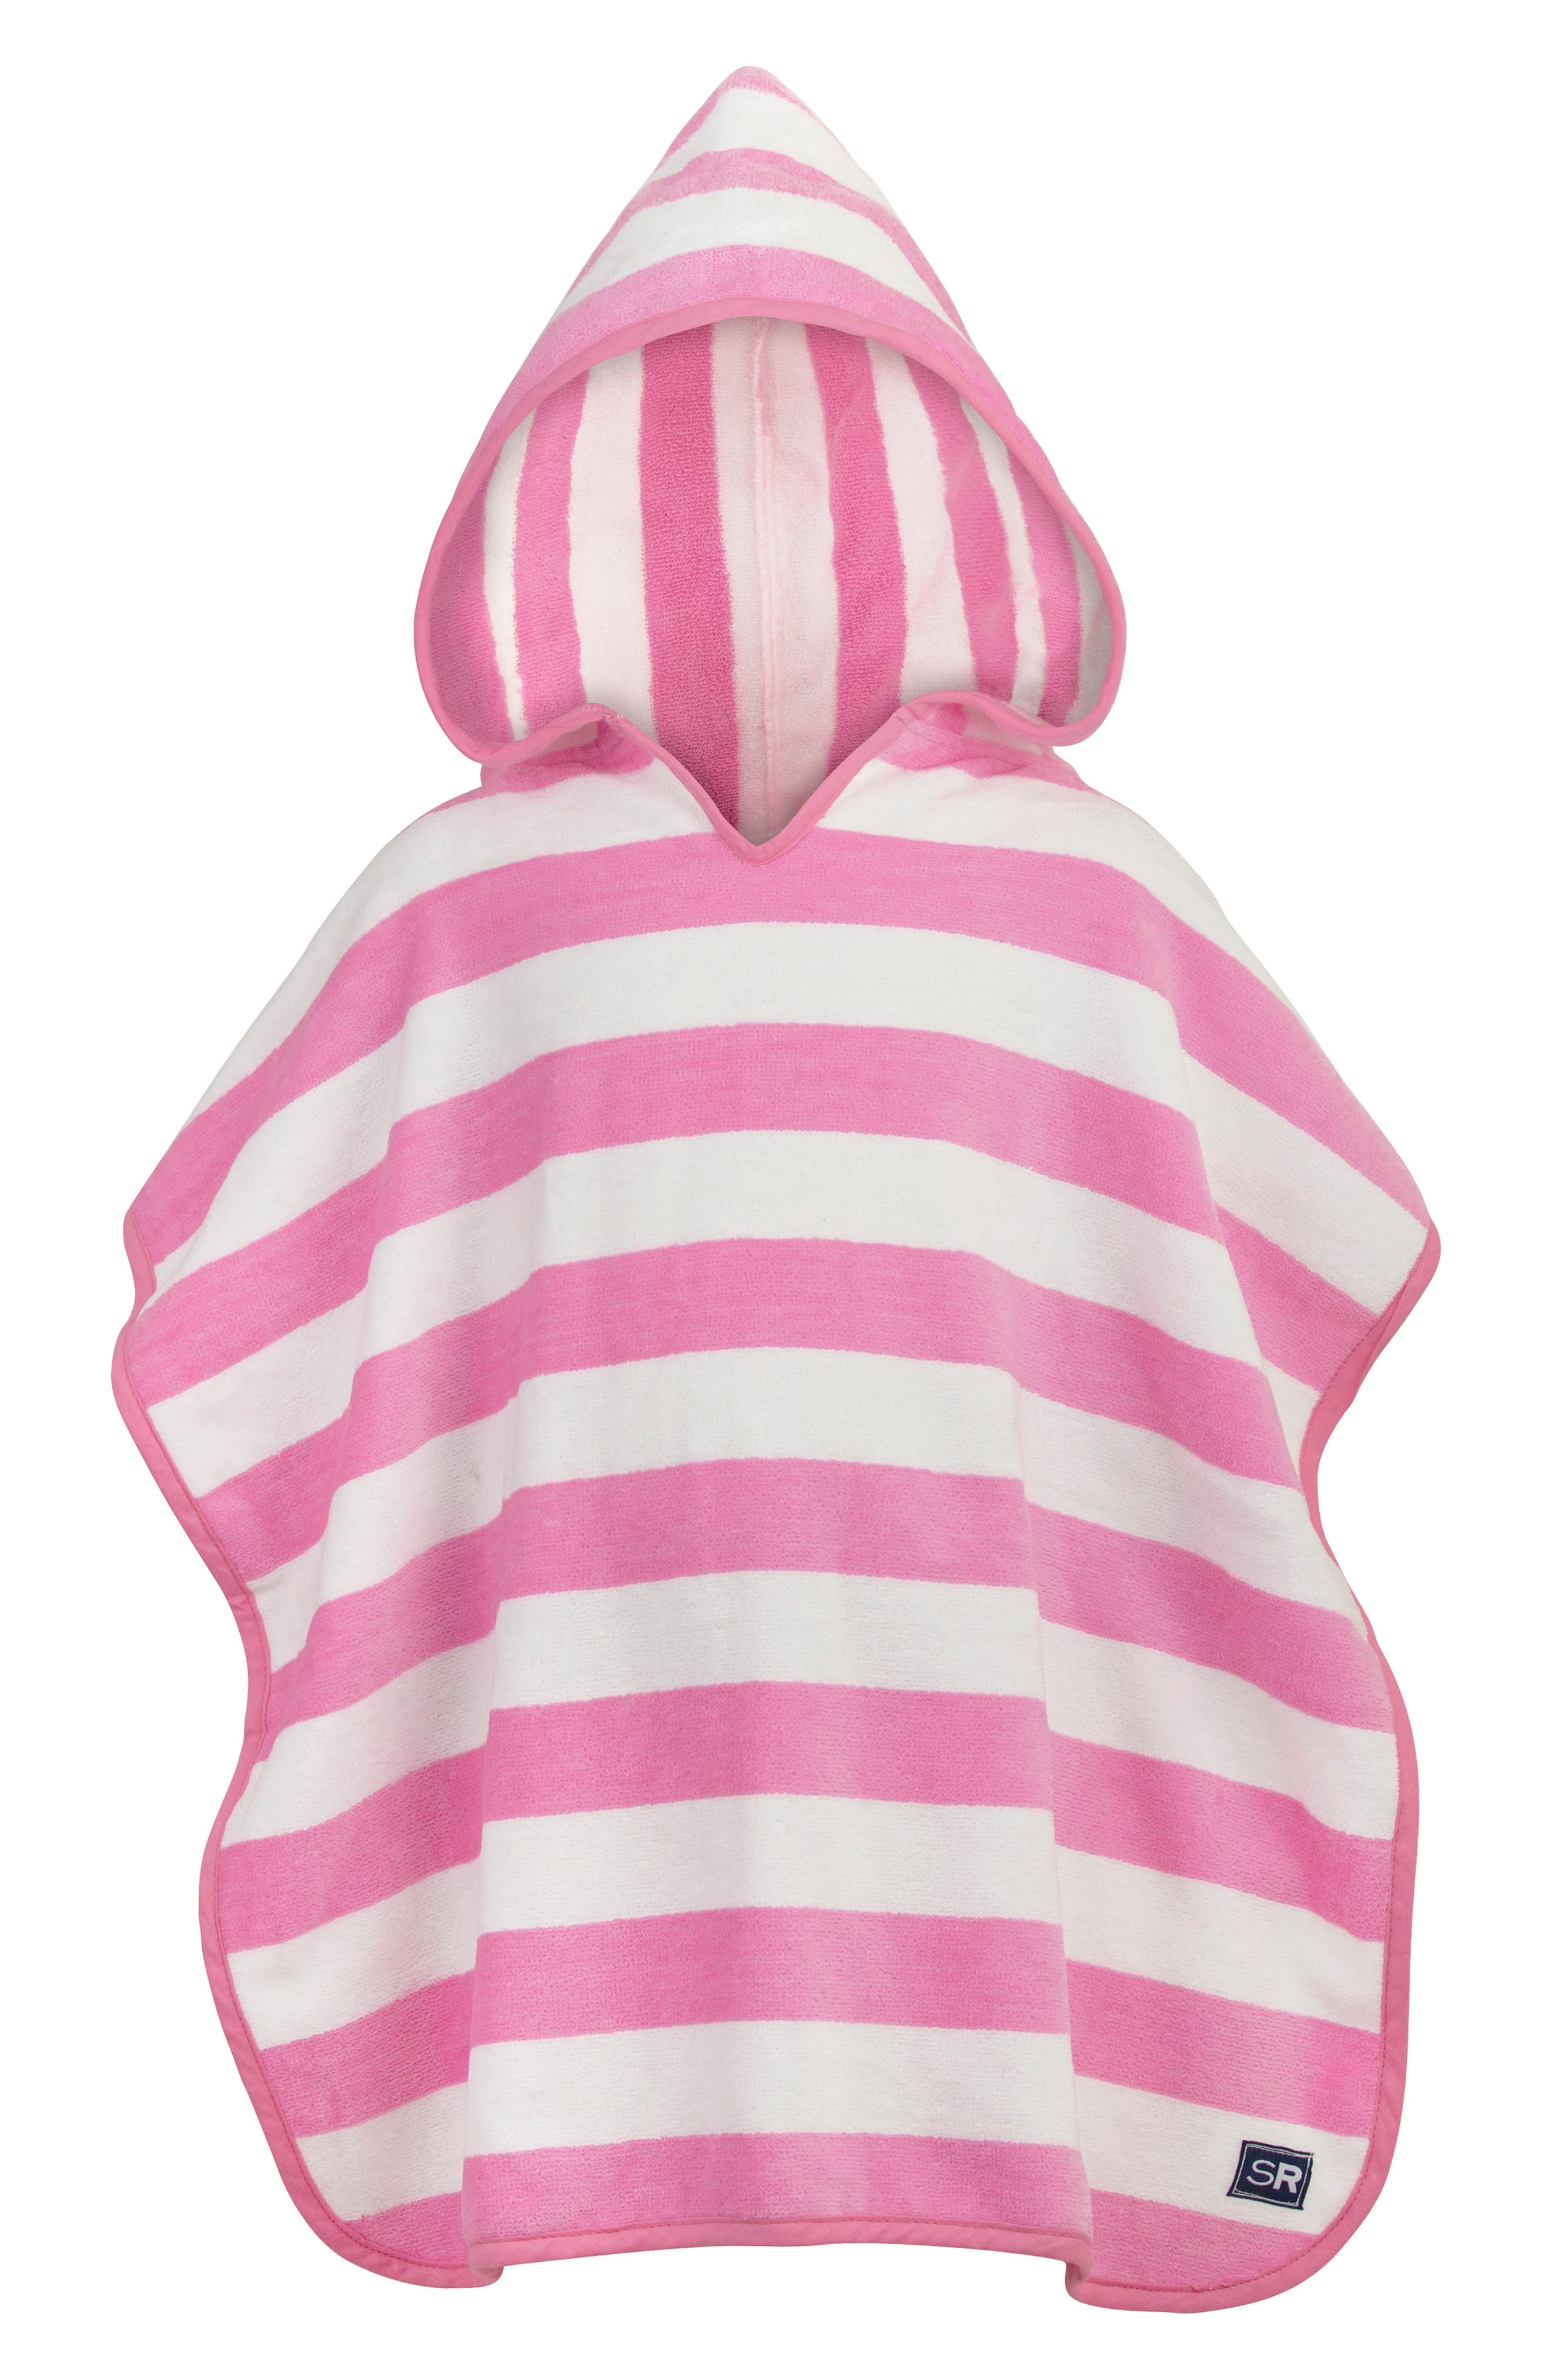 Pink Striped Hooded Towel,                         Main,                         color, PINK WHITE STRIPE